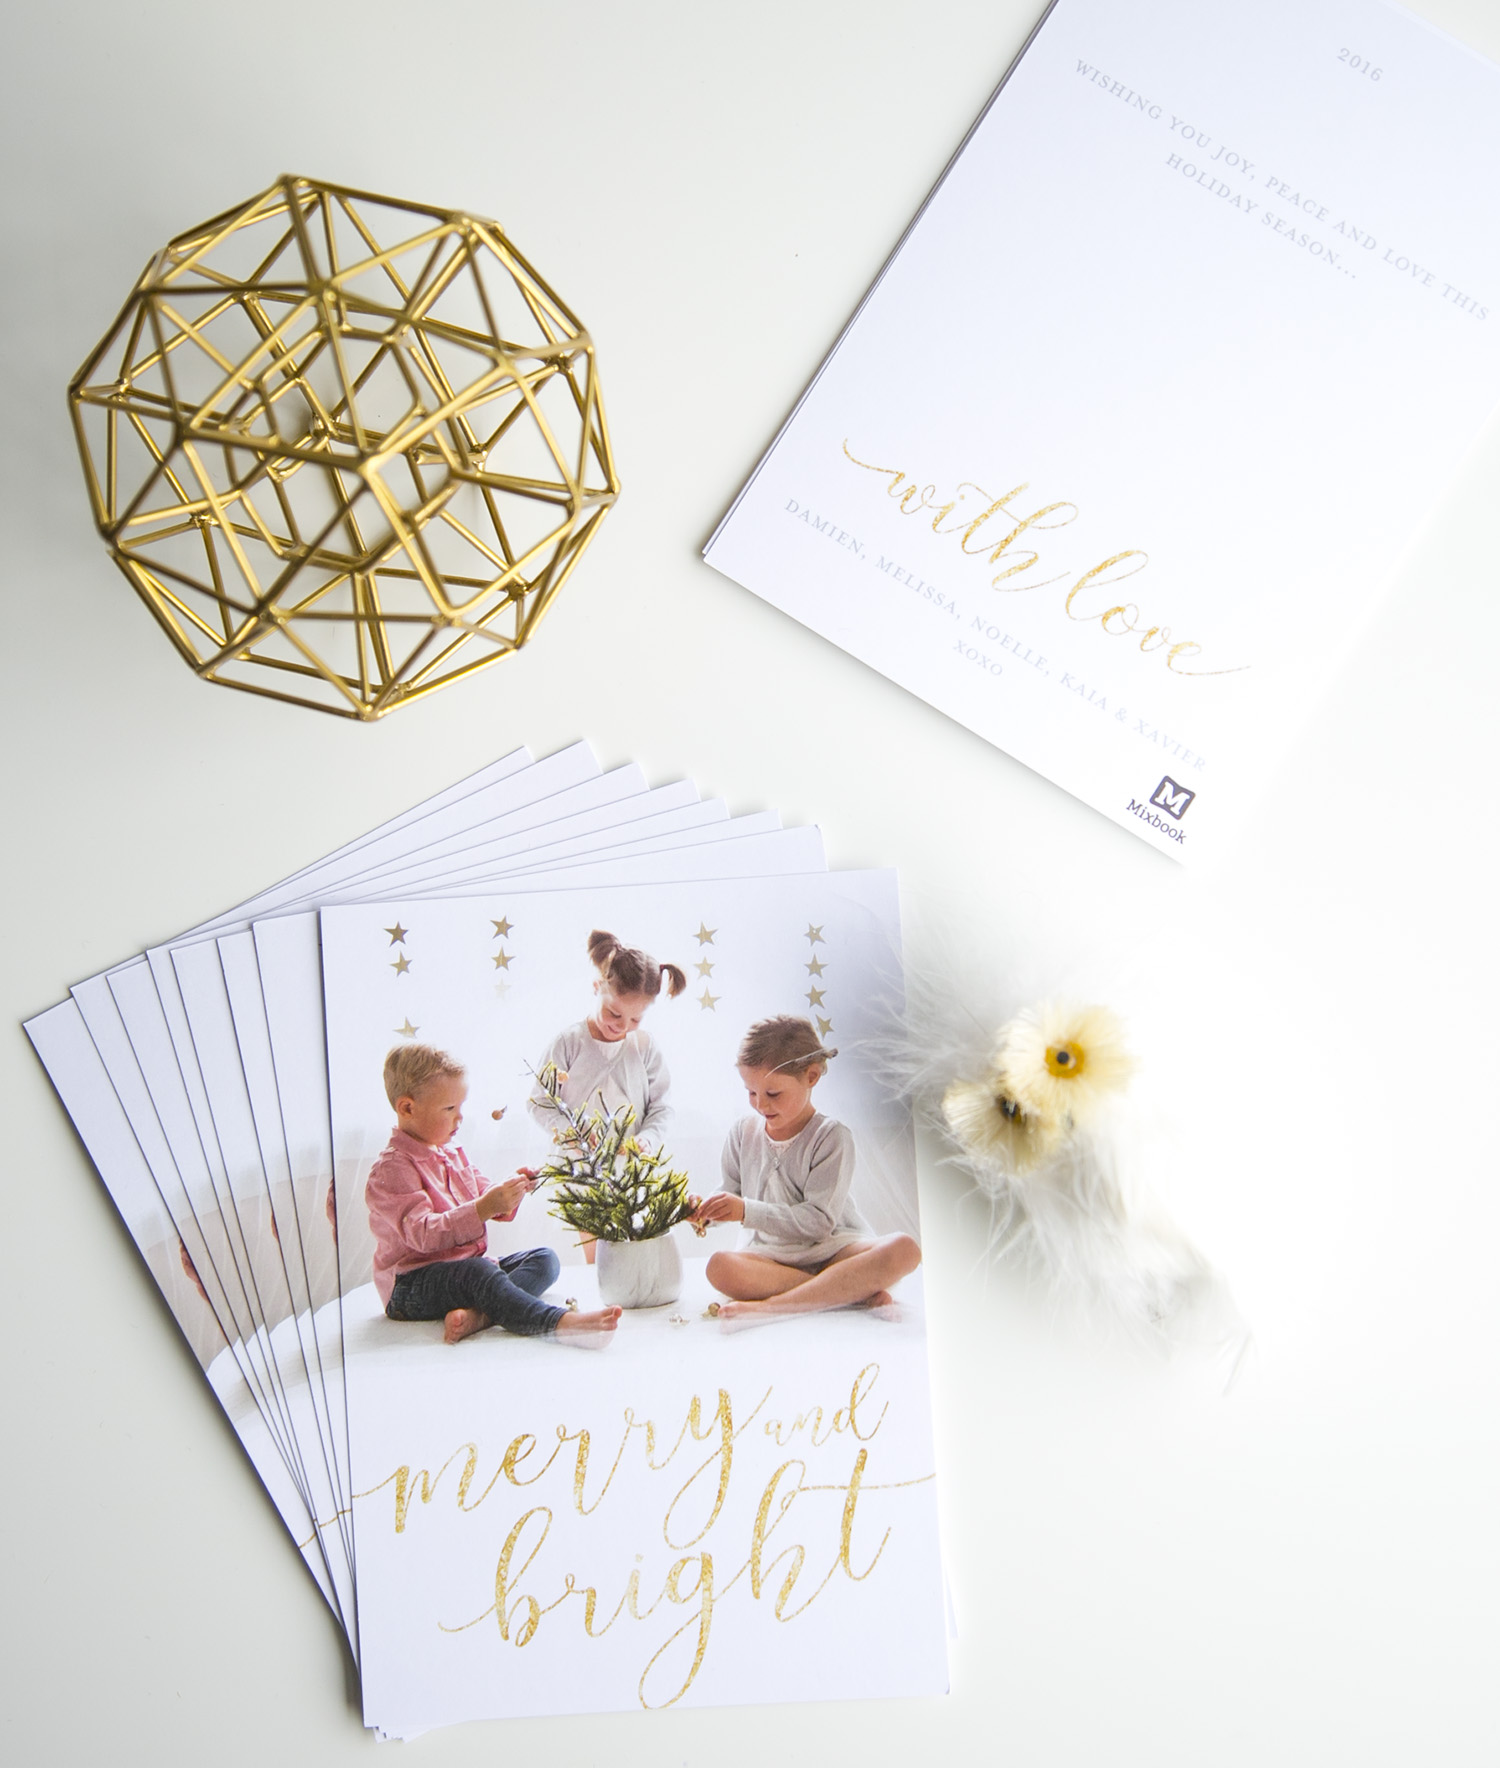 WINTER DAISY 2016 Christmas Cards with Mixbook